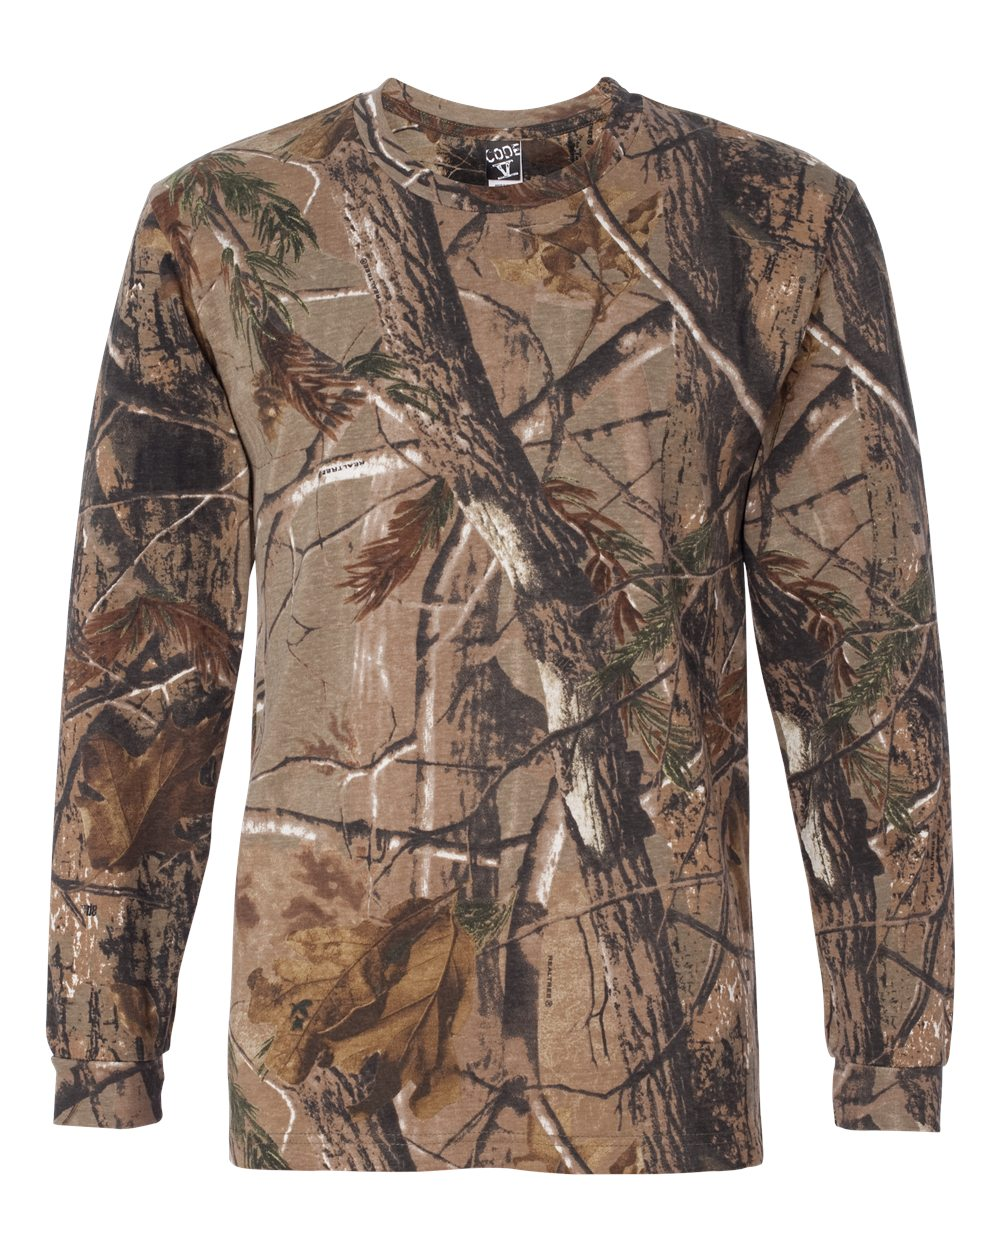 Code-Five-Mens-Adult-Realtree-Camo-Long-Sleeve-Tee-3981-up-to-3XL miniature 6